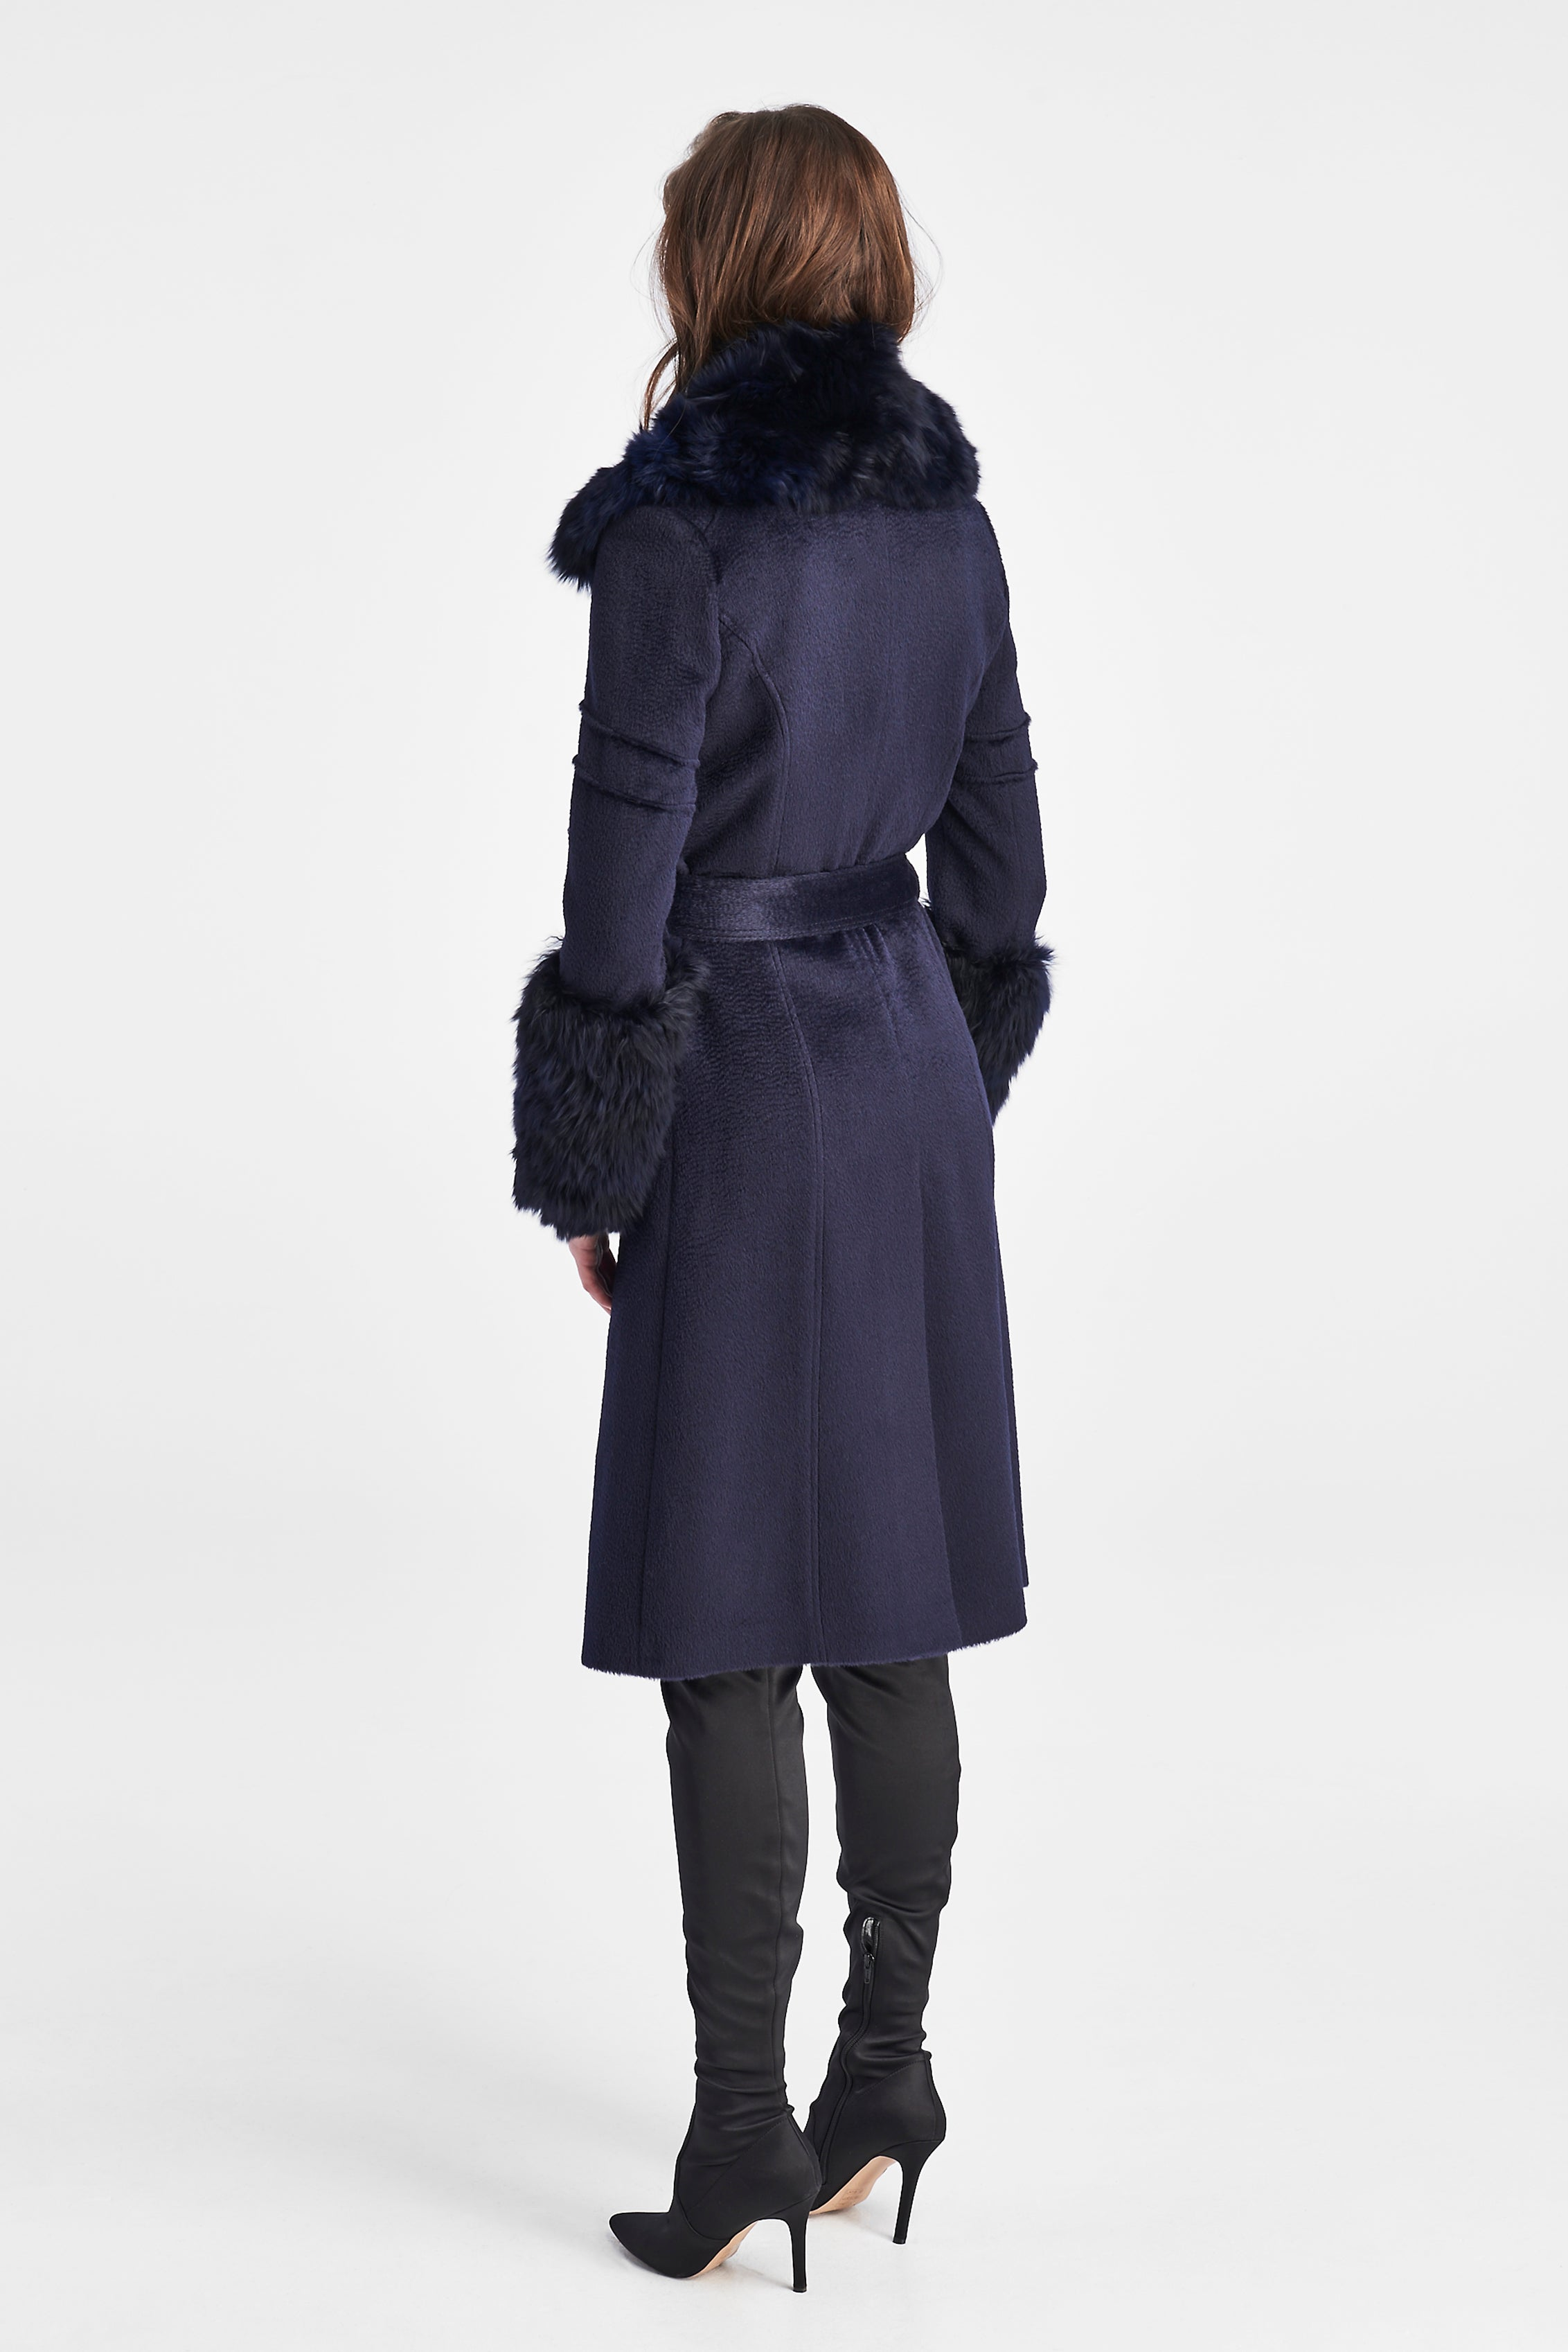 Notched Collar Wrap Coat with Fur Collar and Cuffs, Navy